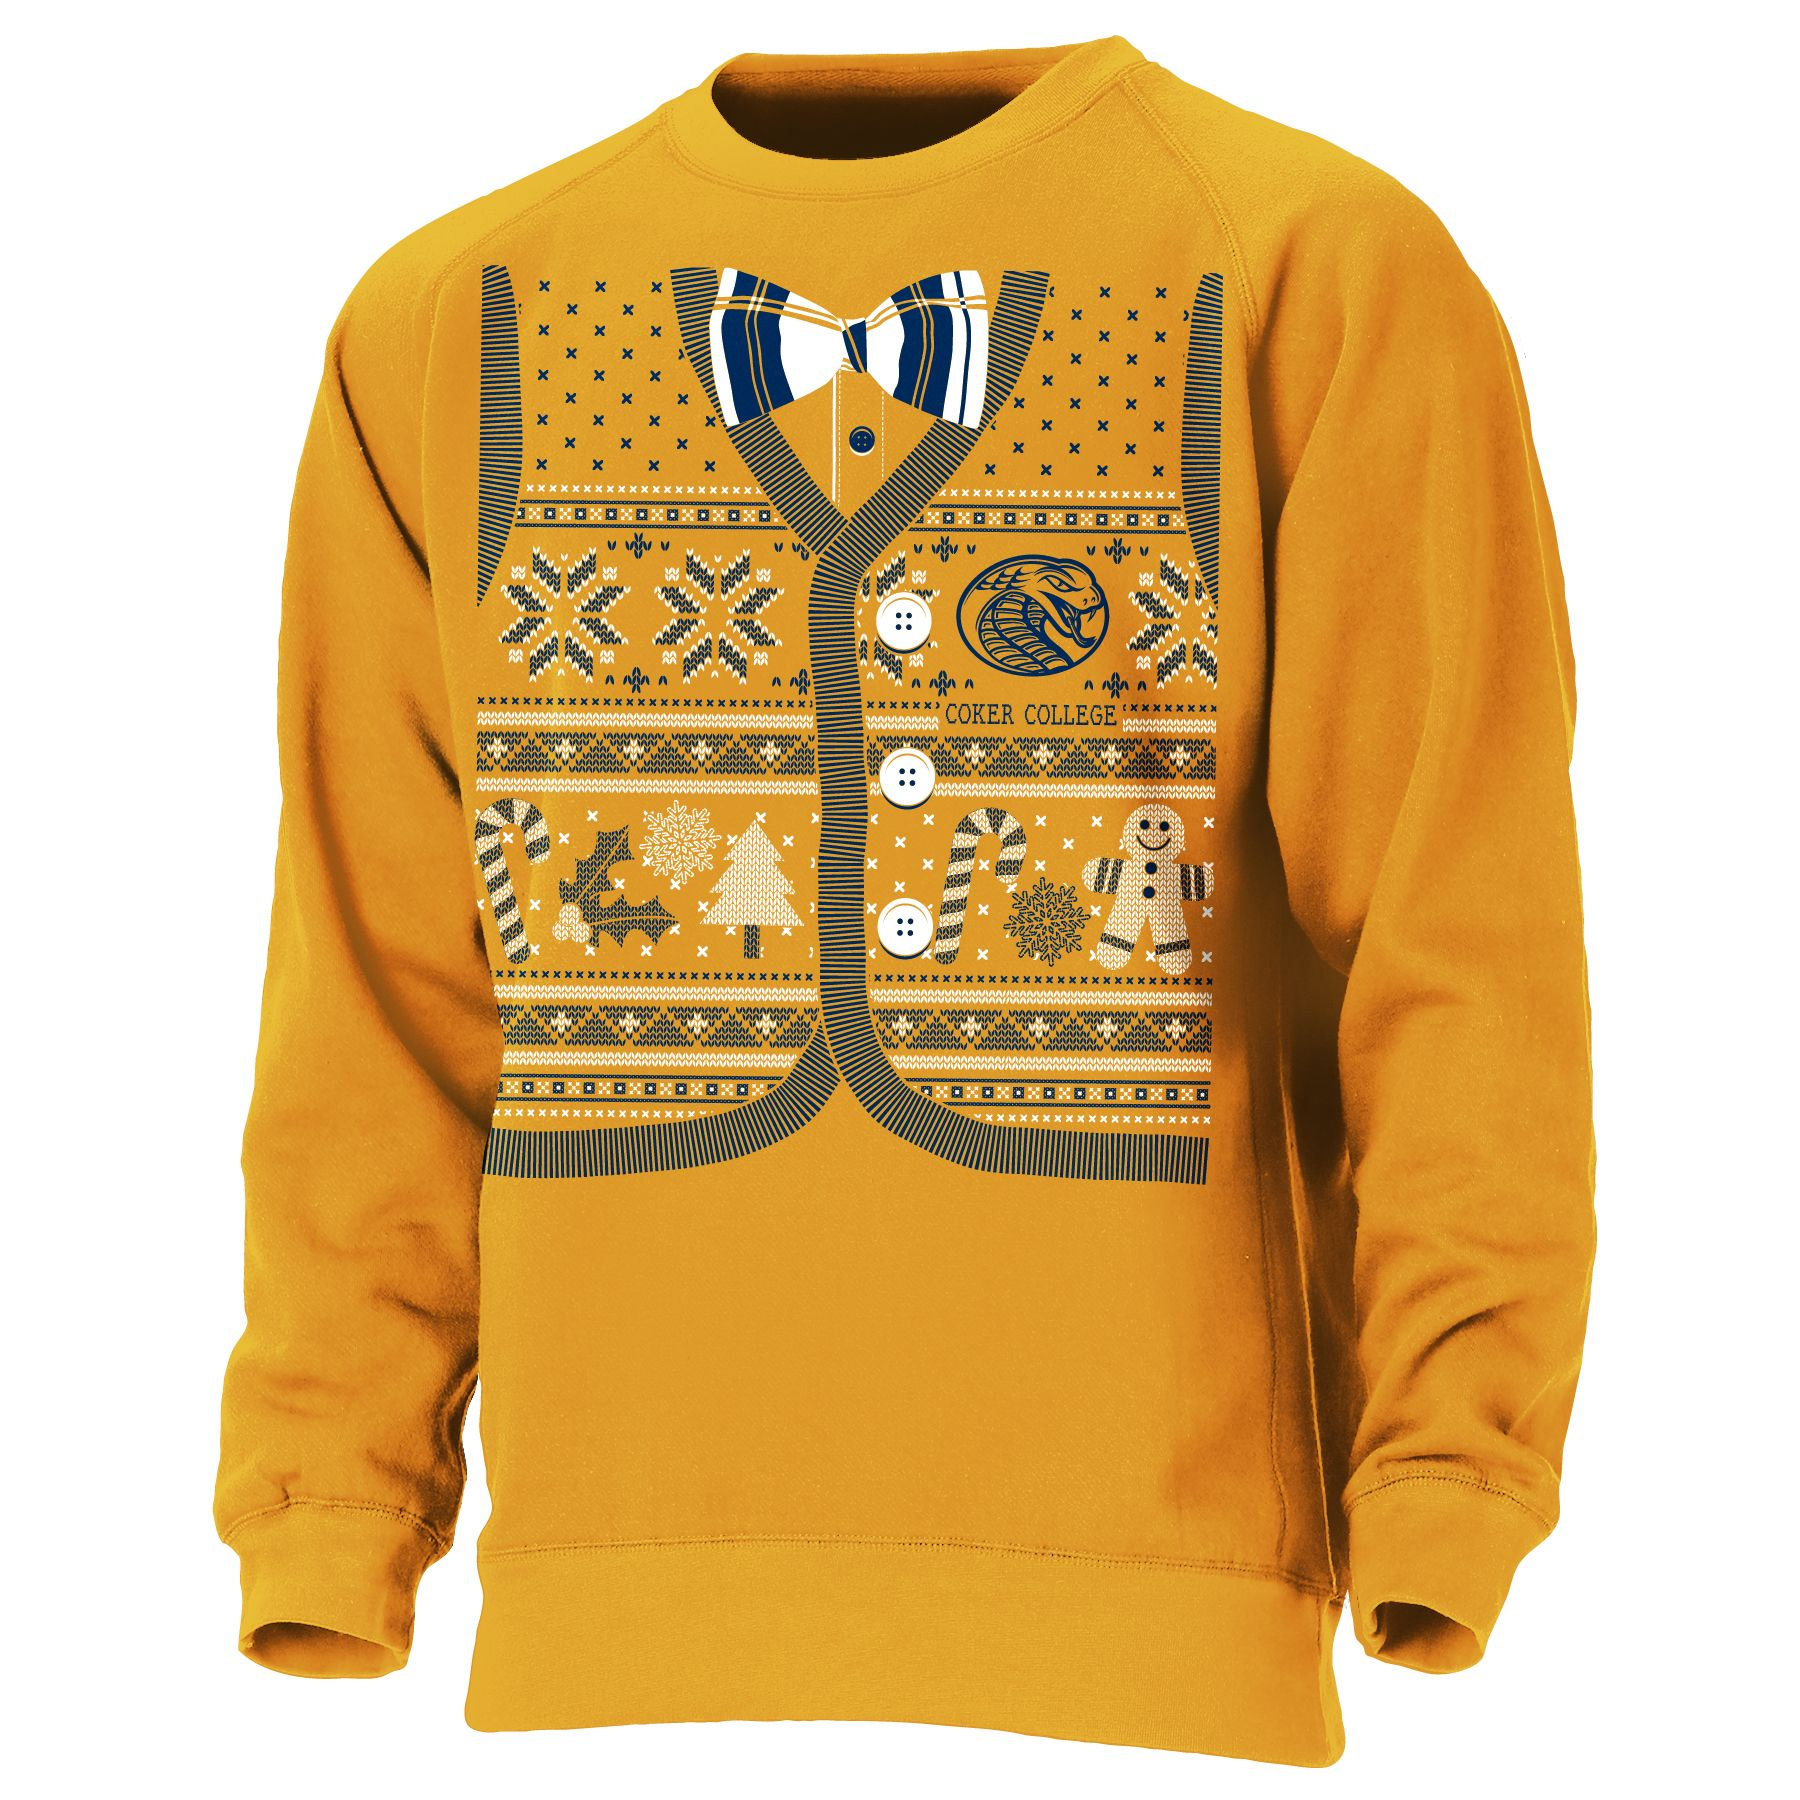 Clearance Shirt UGLY HOLIDAY SWEATER CREW NECK